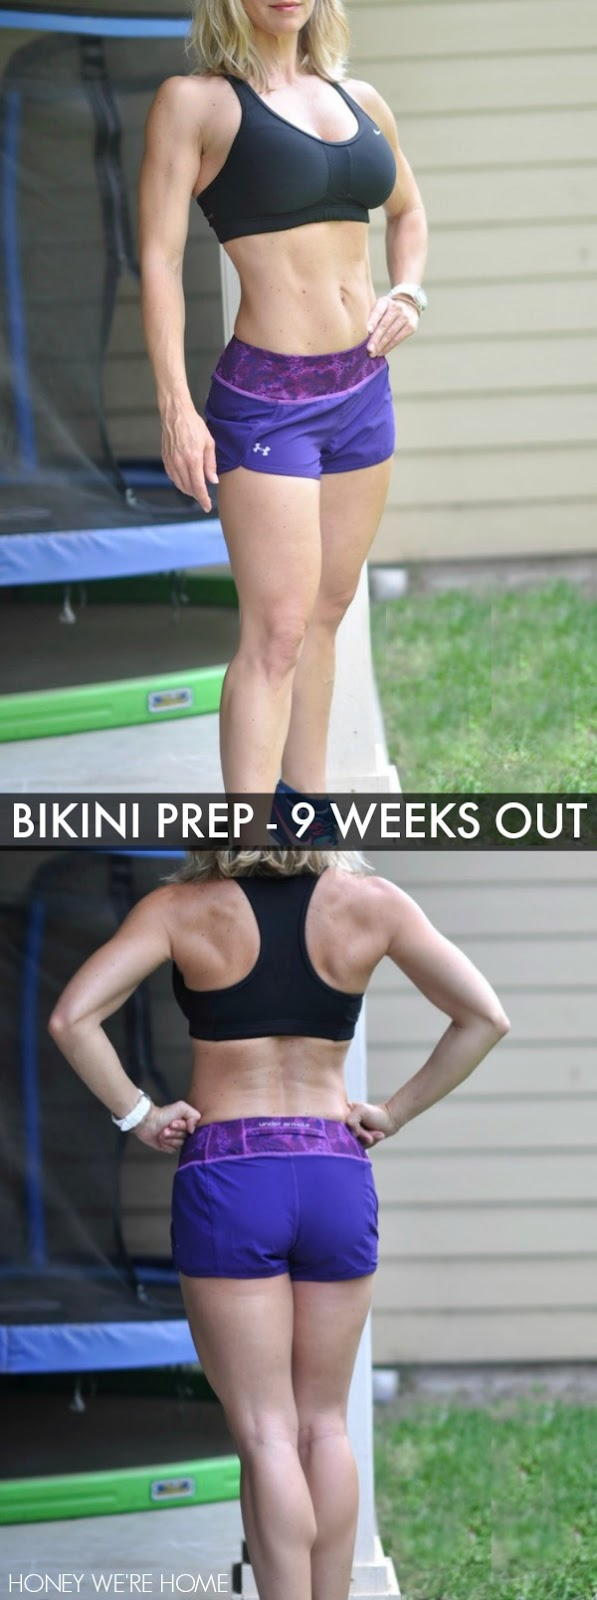 Bikini Contest Prep - 9 Weeks Out Recap